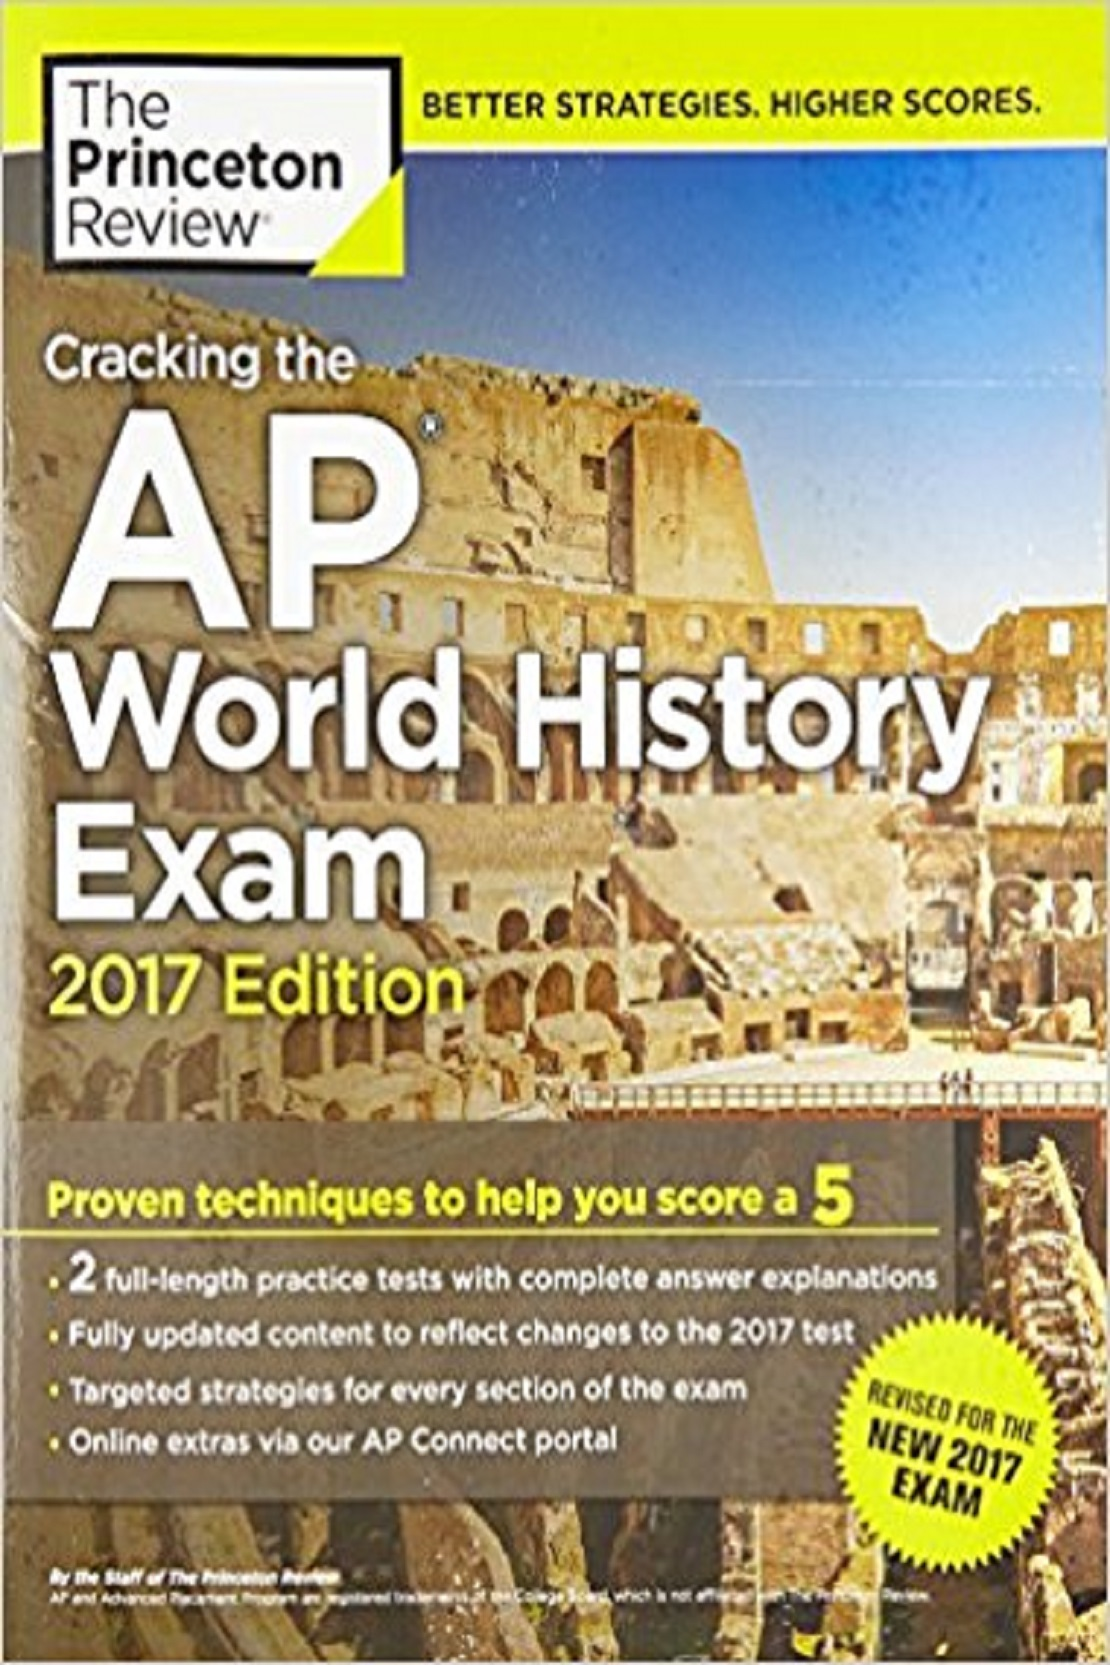 Cracking The Ap World History Exam 2017 Ed (2 Practice Tests Included) (PB)